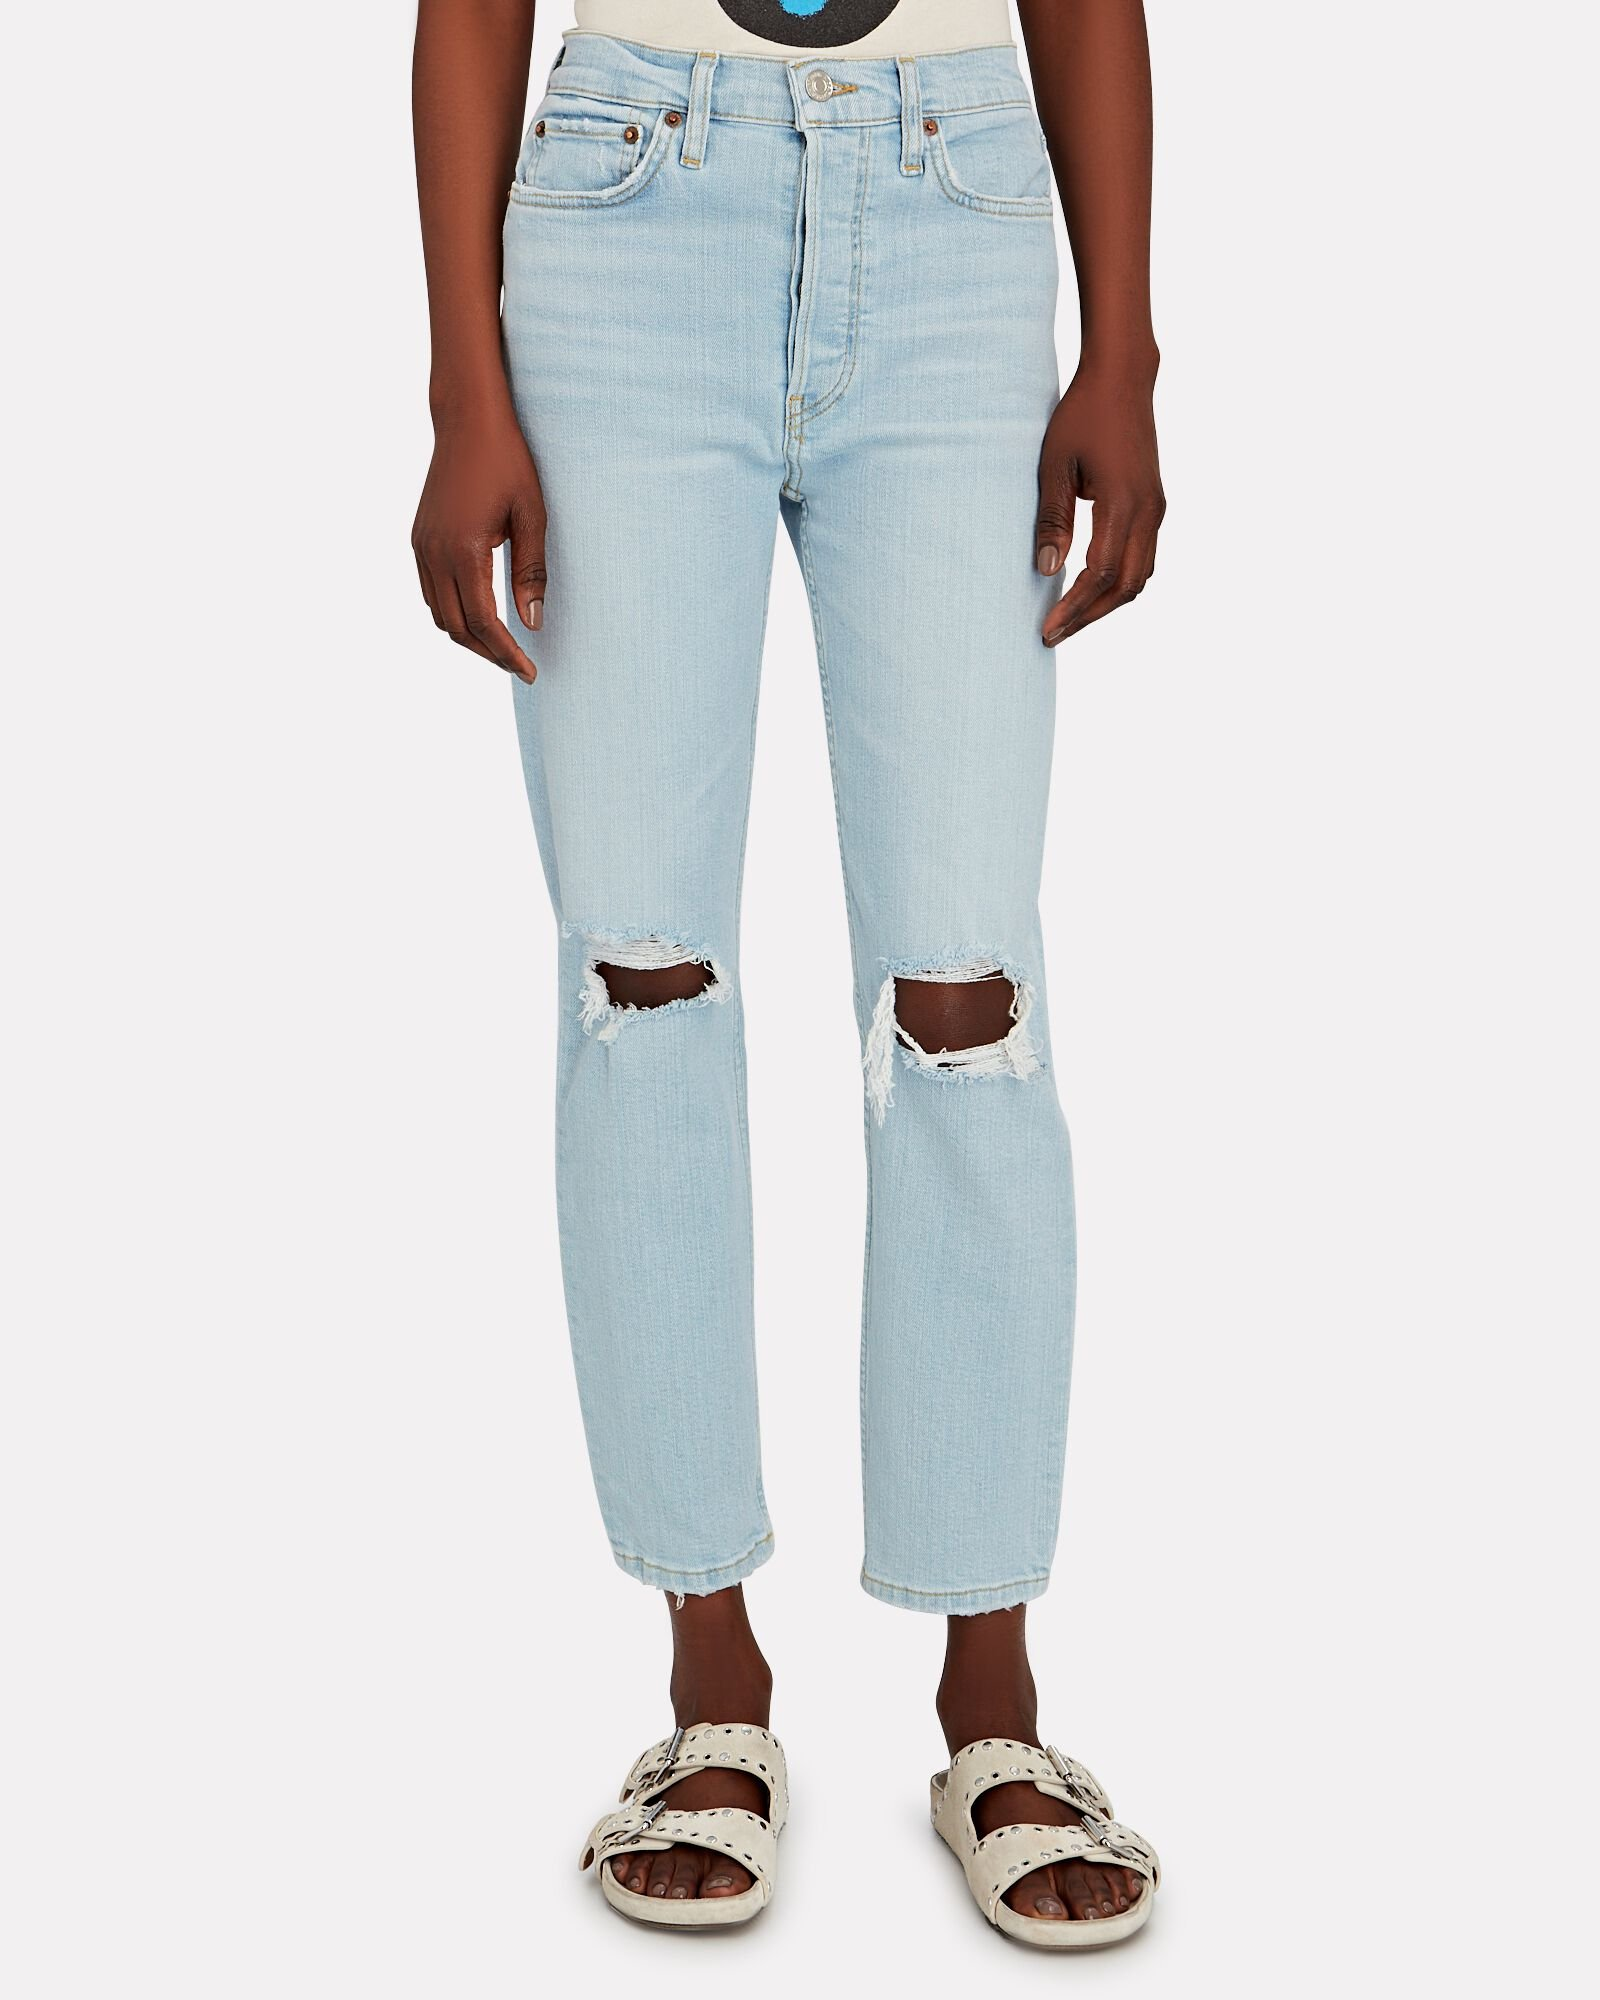 90s High-Rise Ankle Crop Jeans, DESTROYED ICY BLUE, hi-res